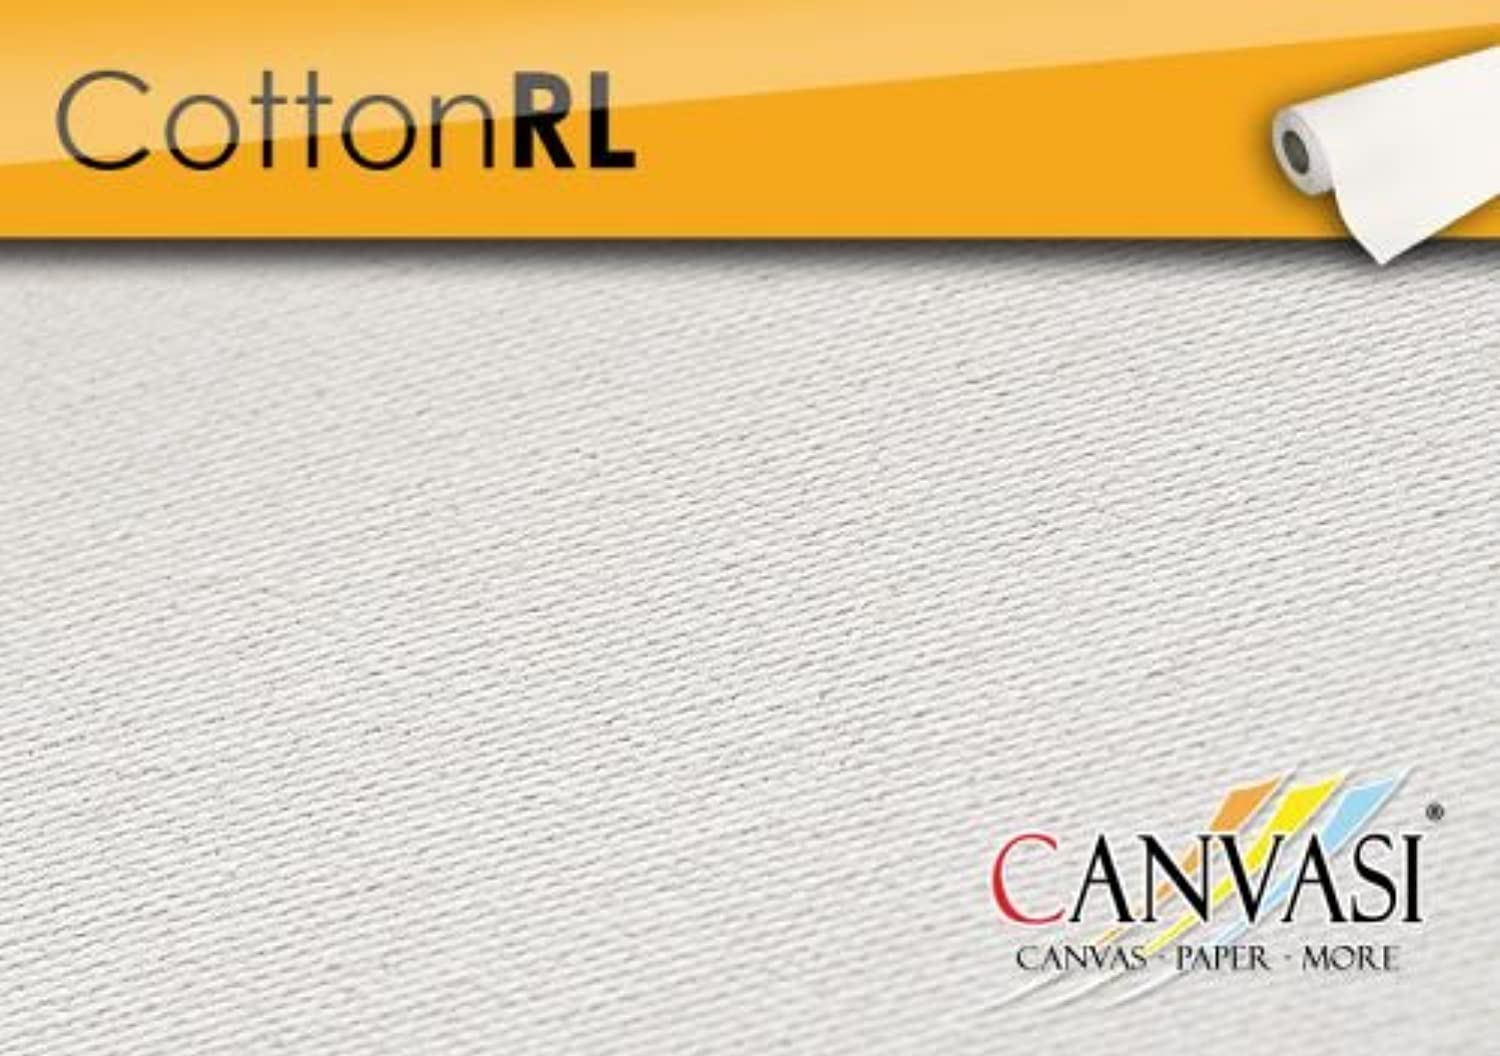 Canvasi Cotton RL B01989CTMA | Outlet Online Store